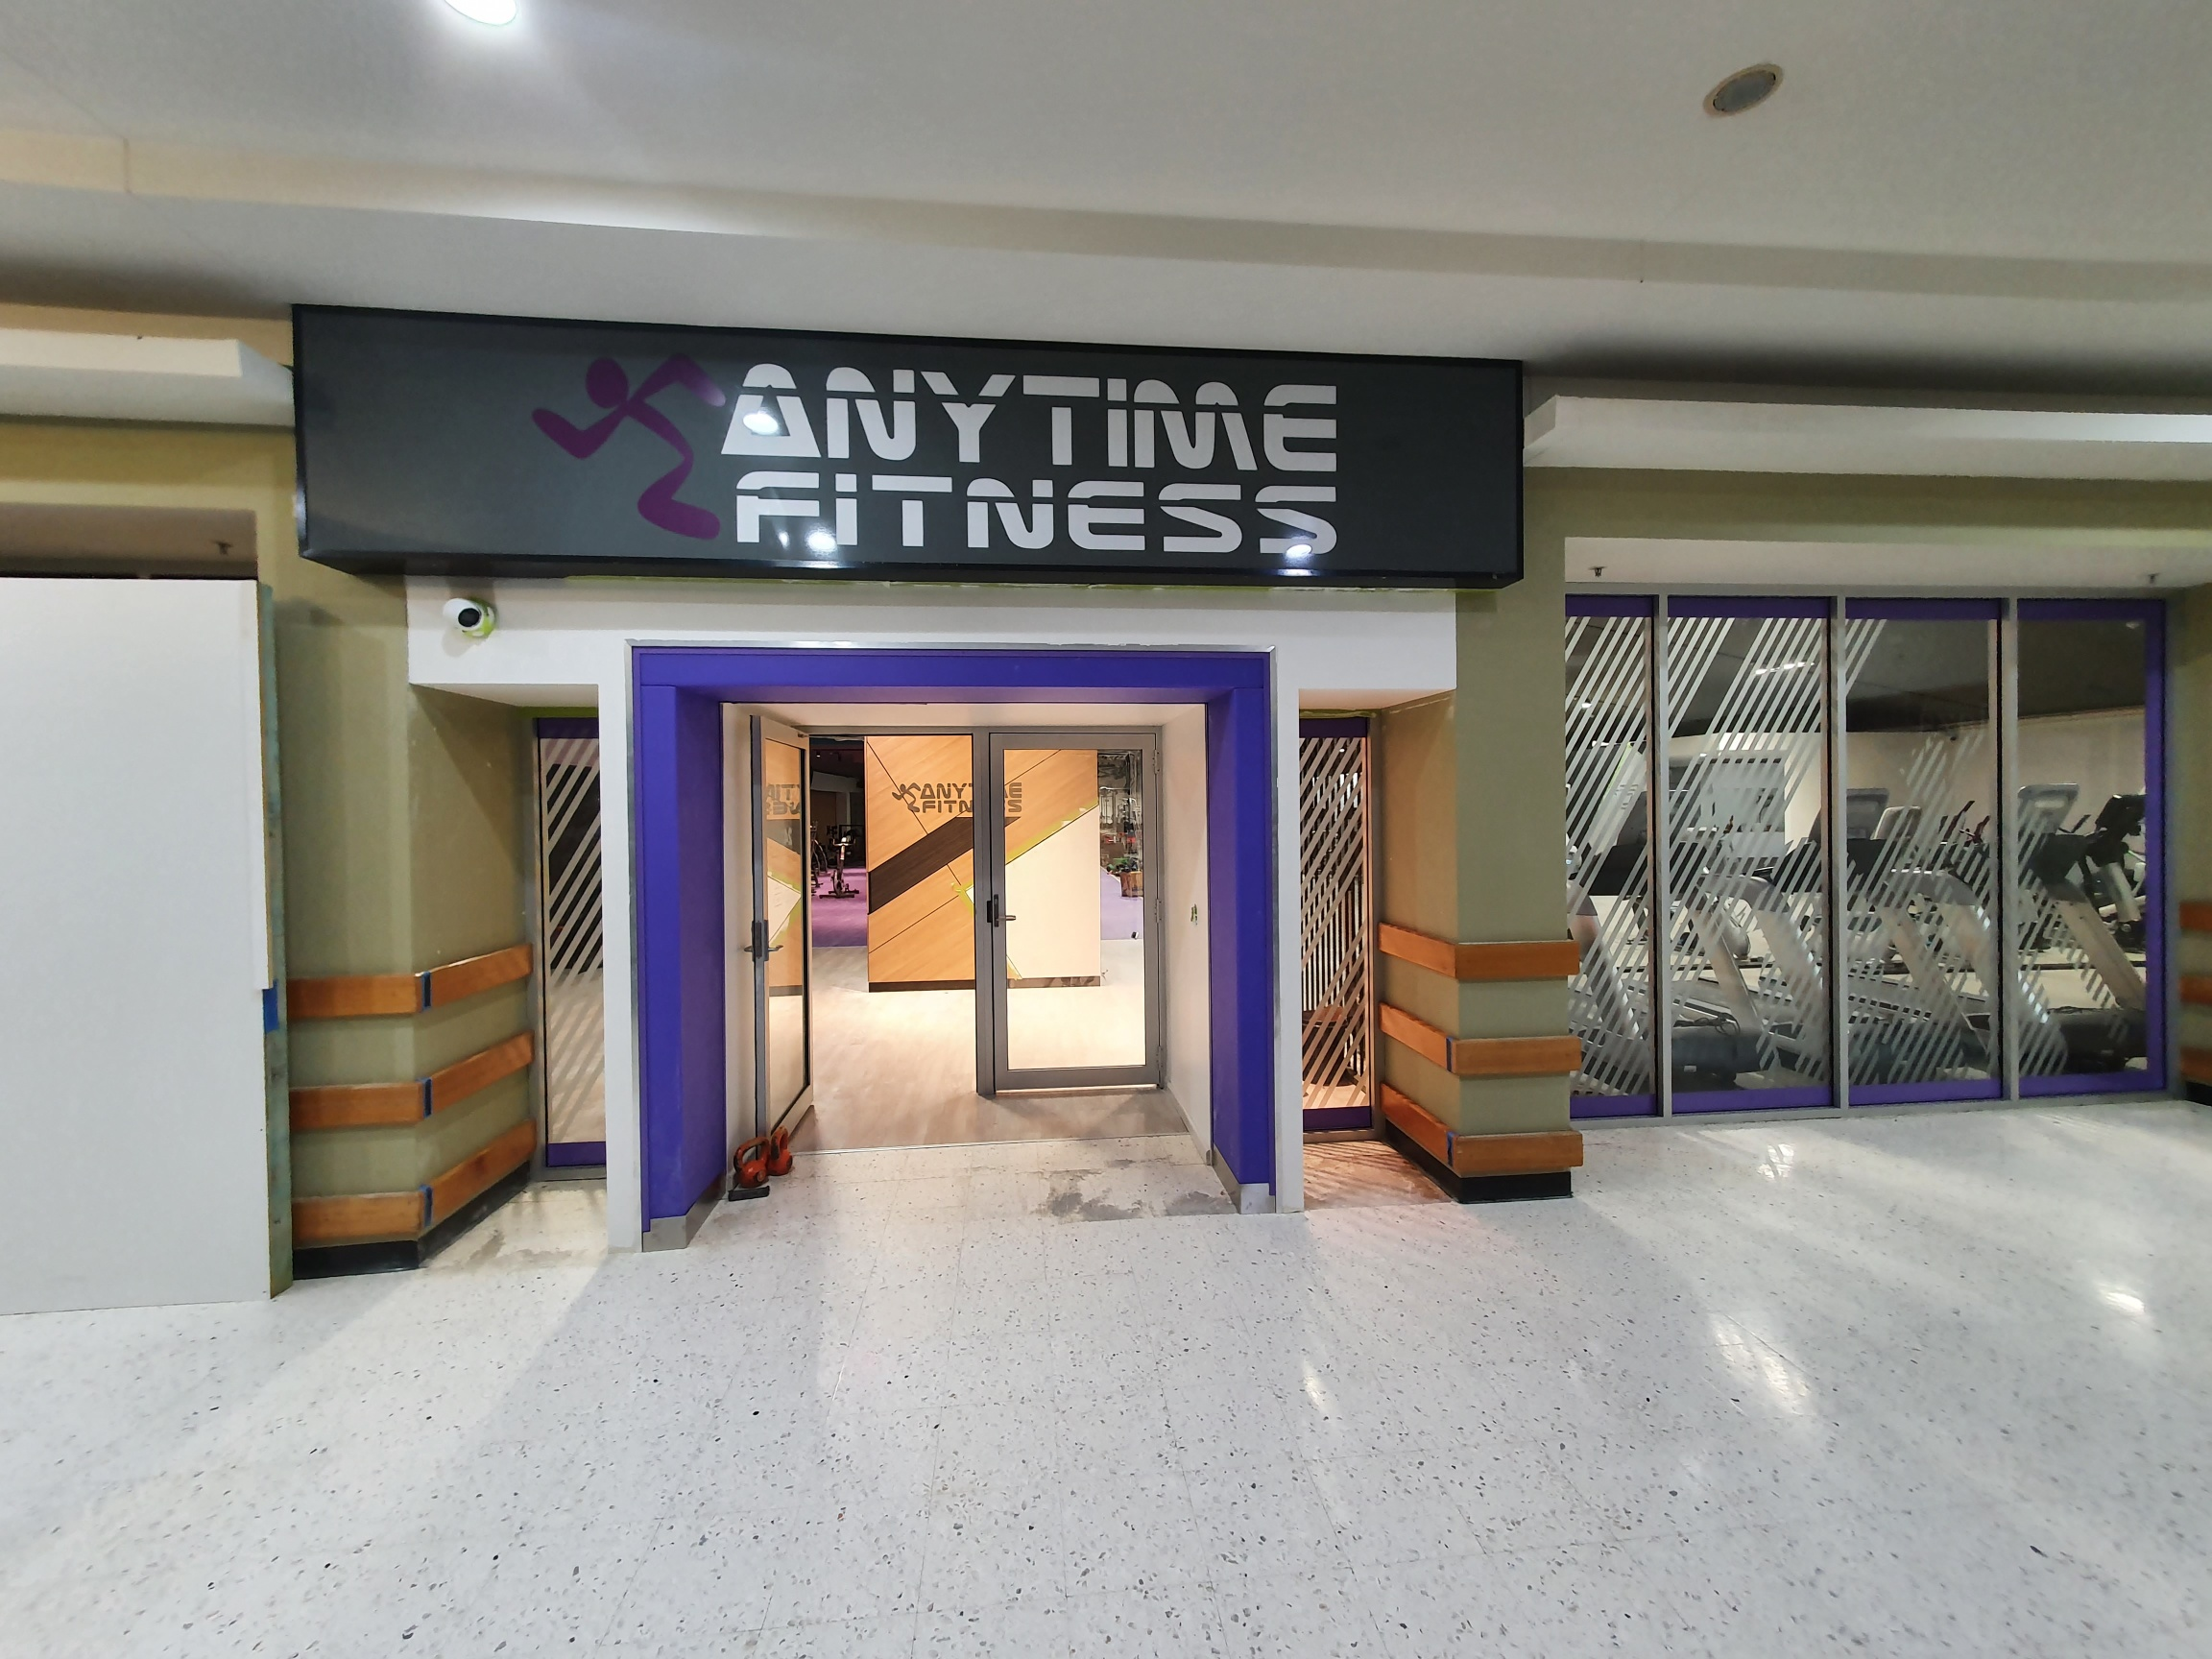 AOK Signs - Anytime Fitness